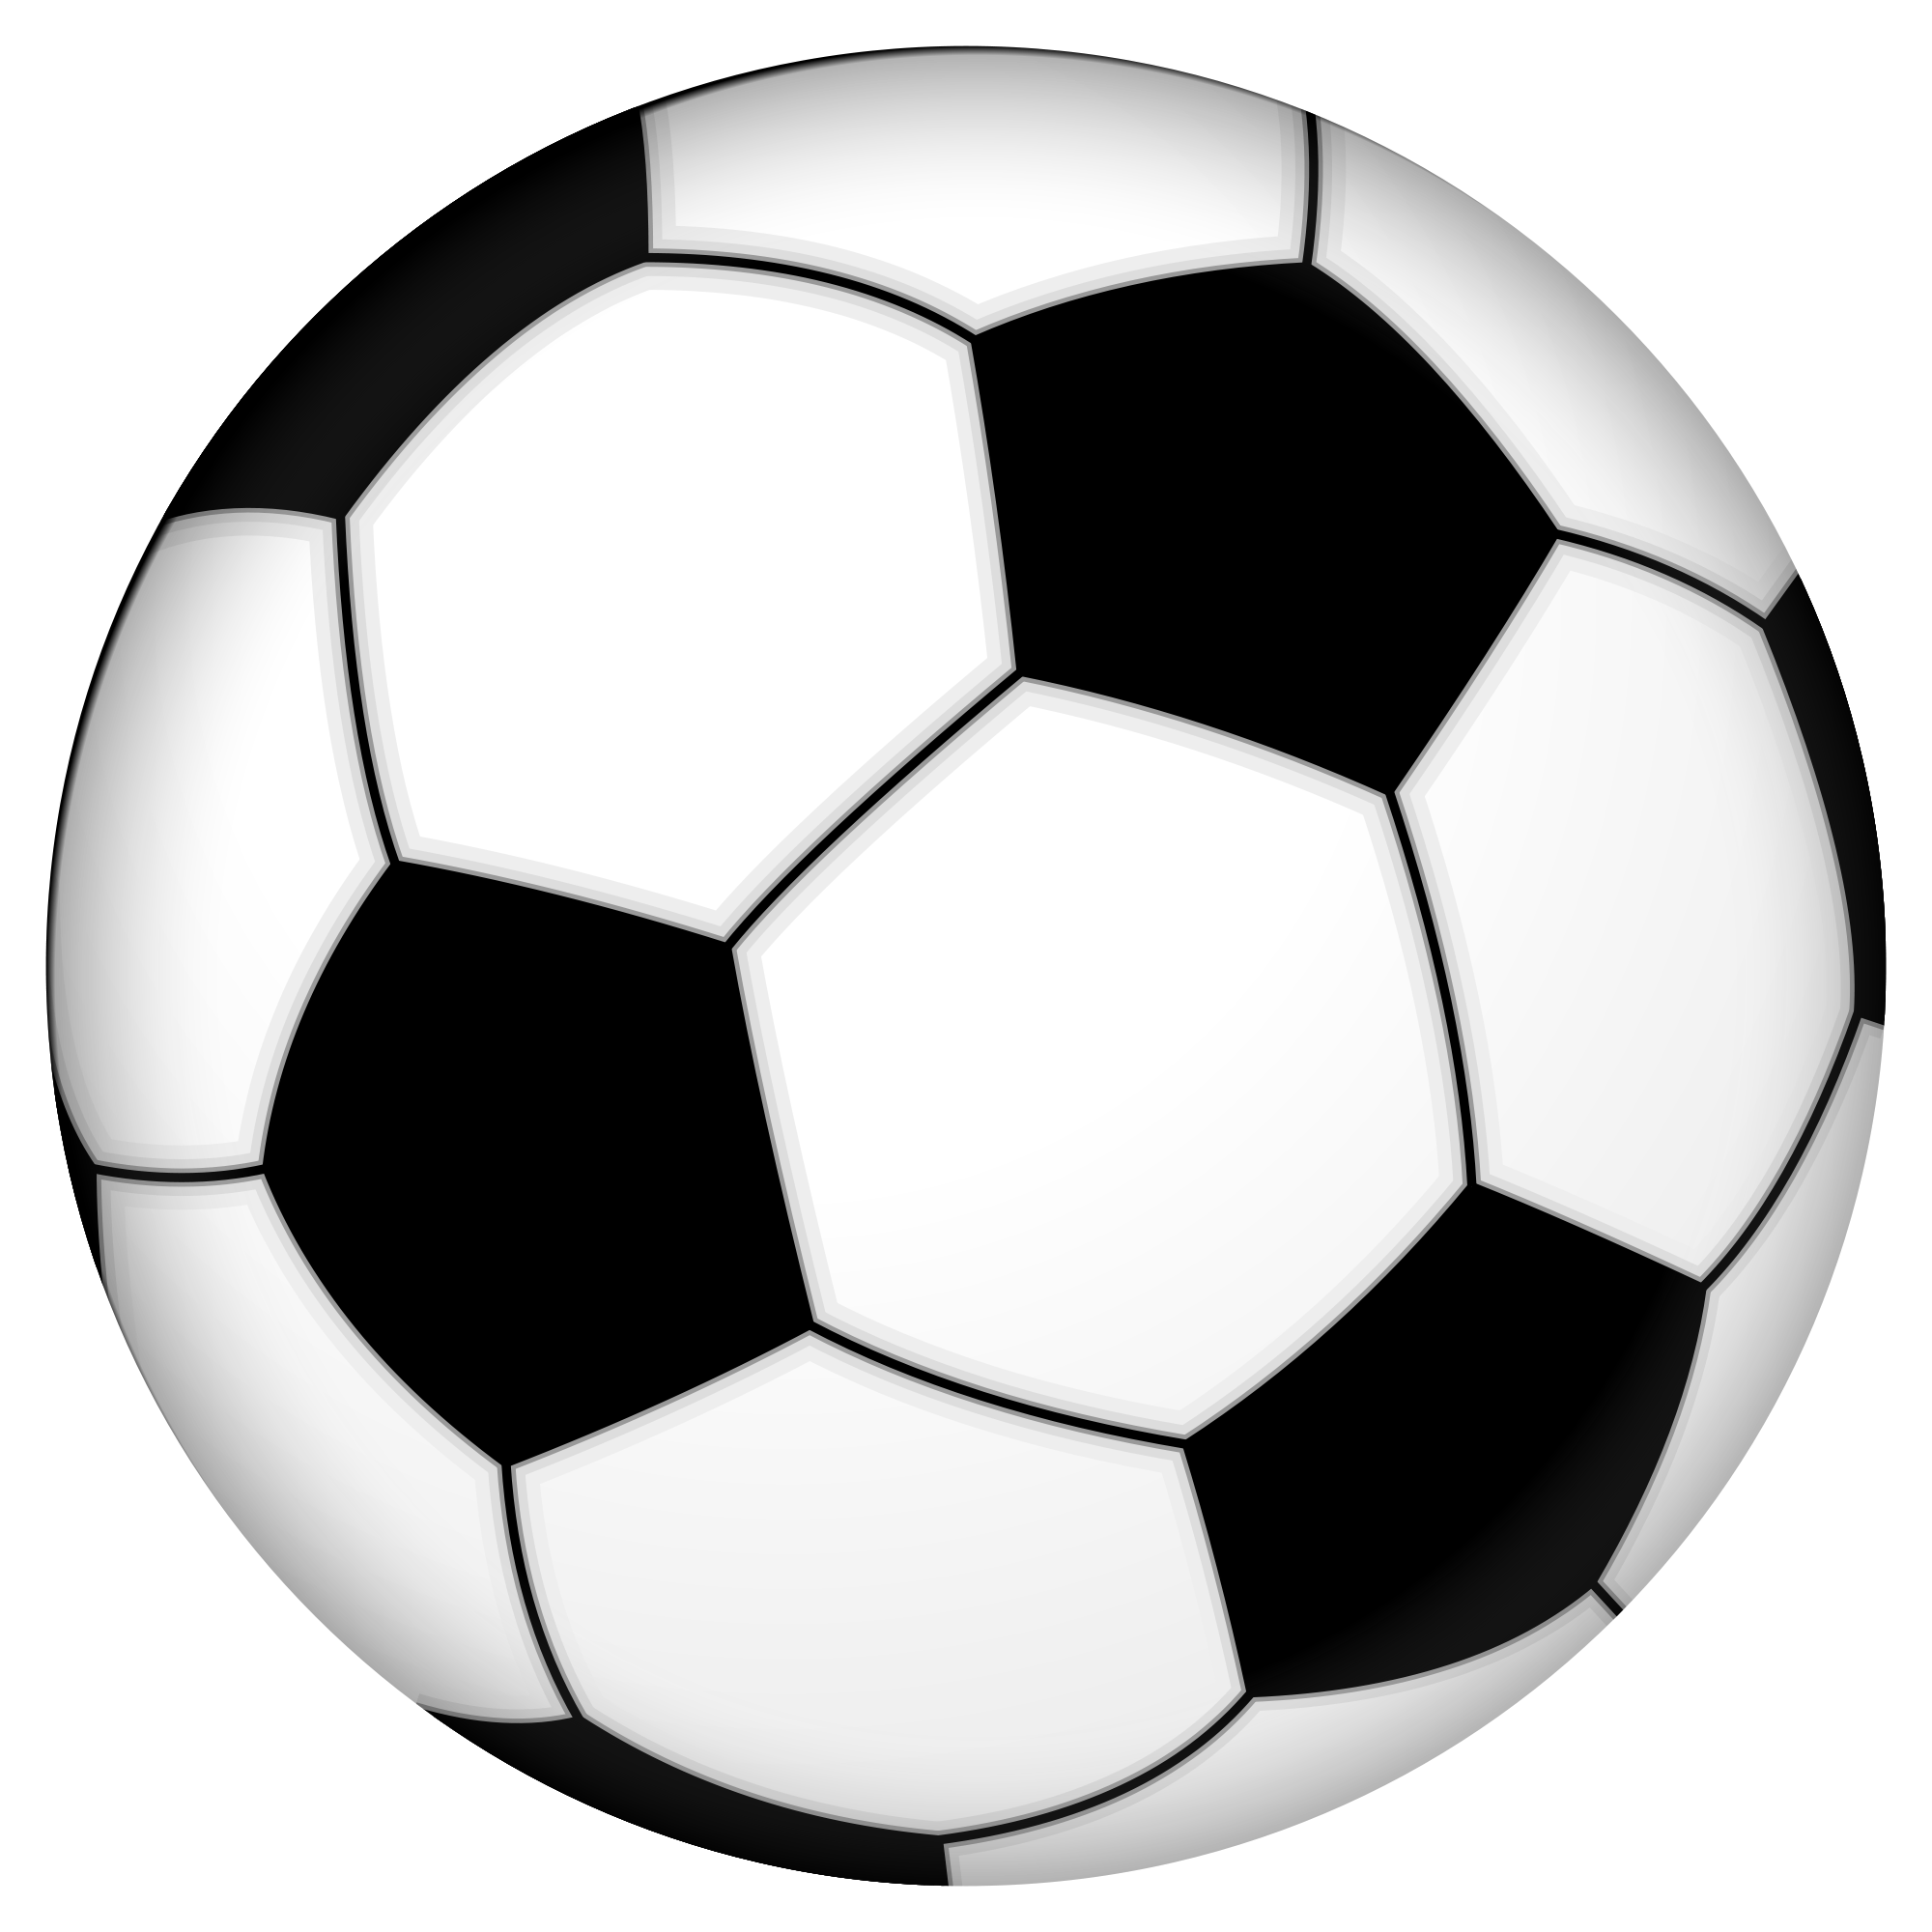 File:Soccer ball.svg - Wikimedia Commons